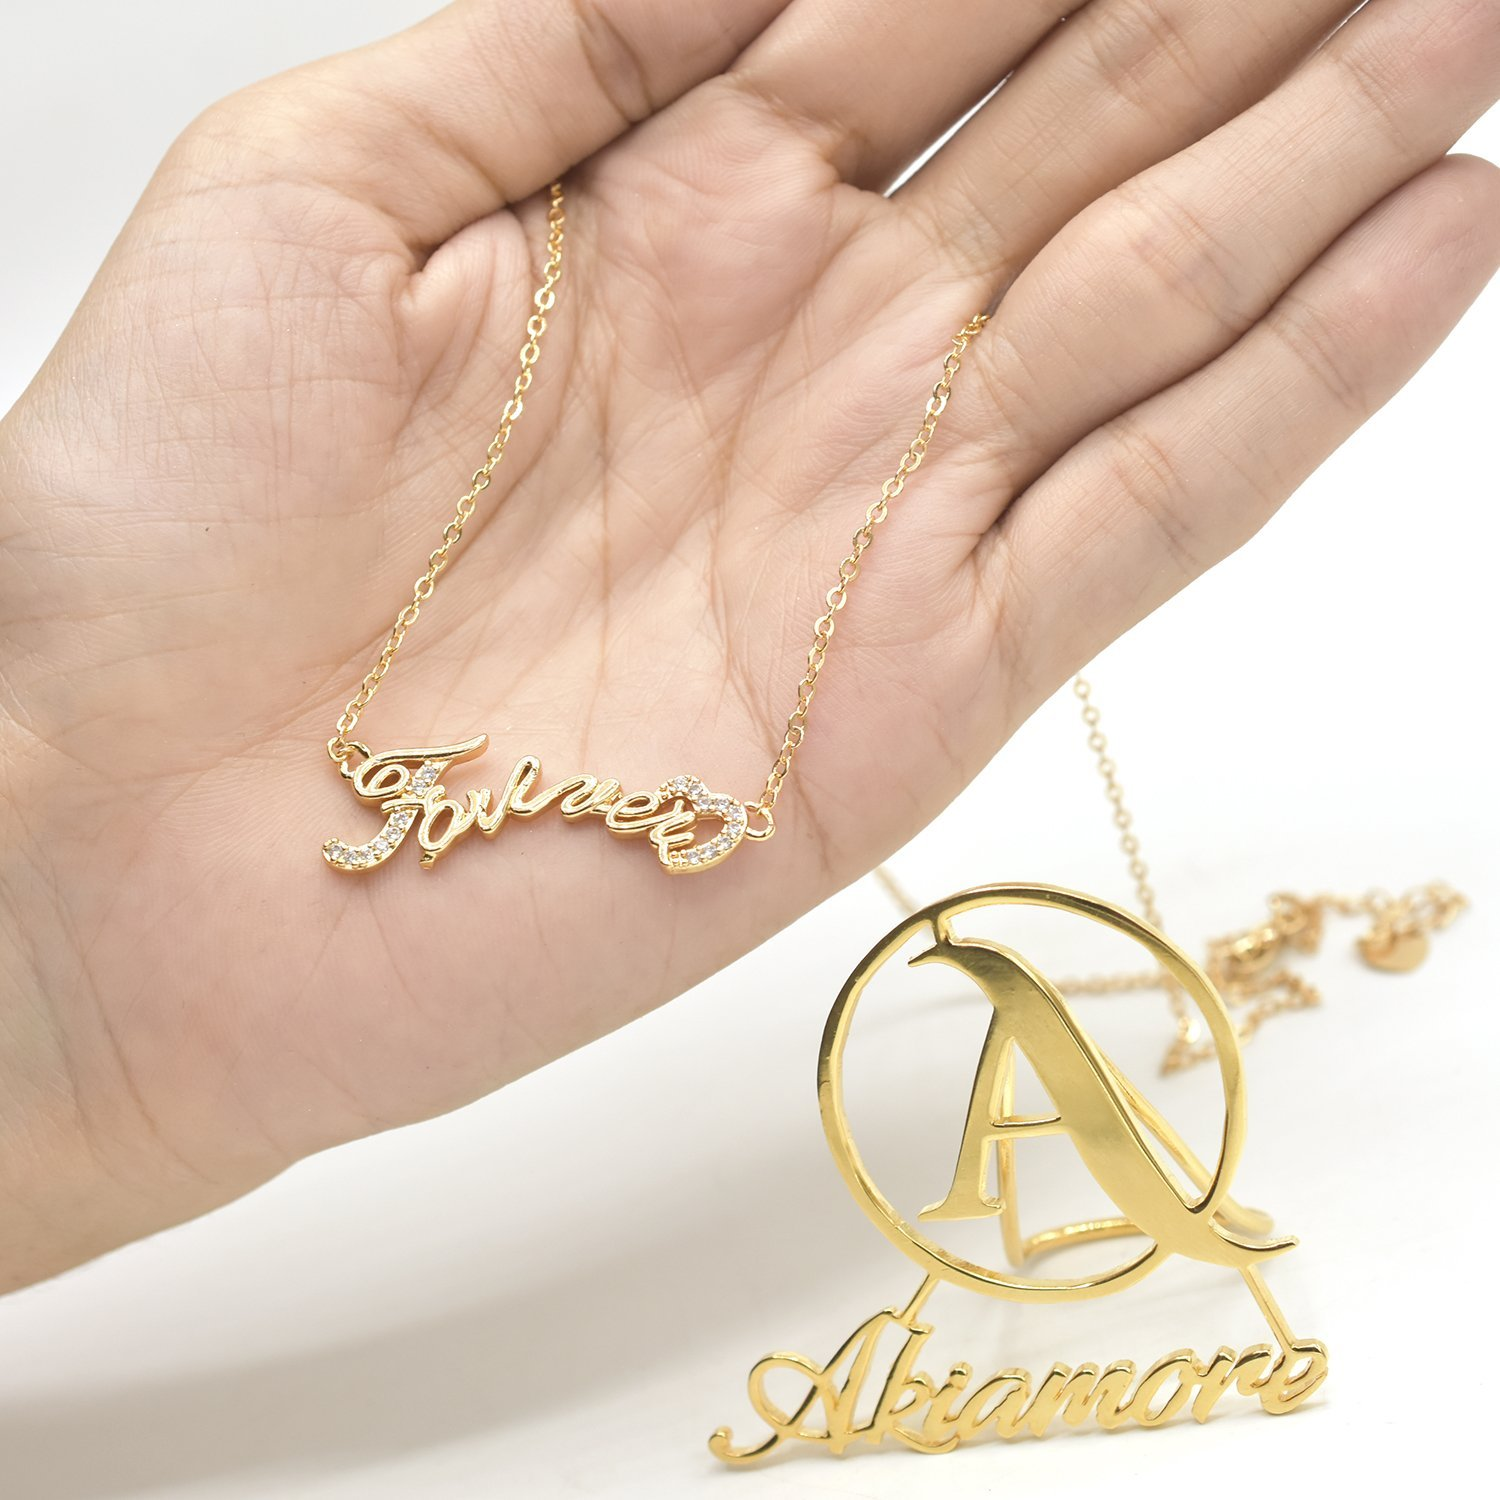 Fancy Pendent Necklace Wedding Engagement Party Charms Daily Wear Accessories for Women